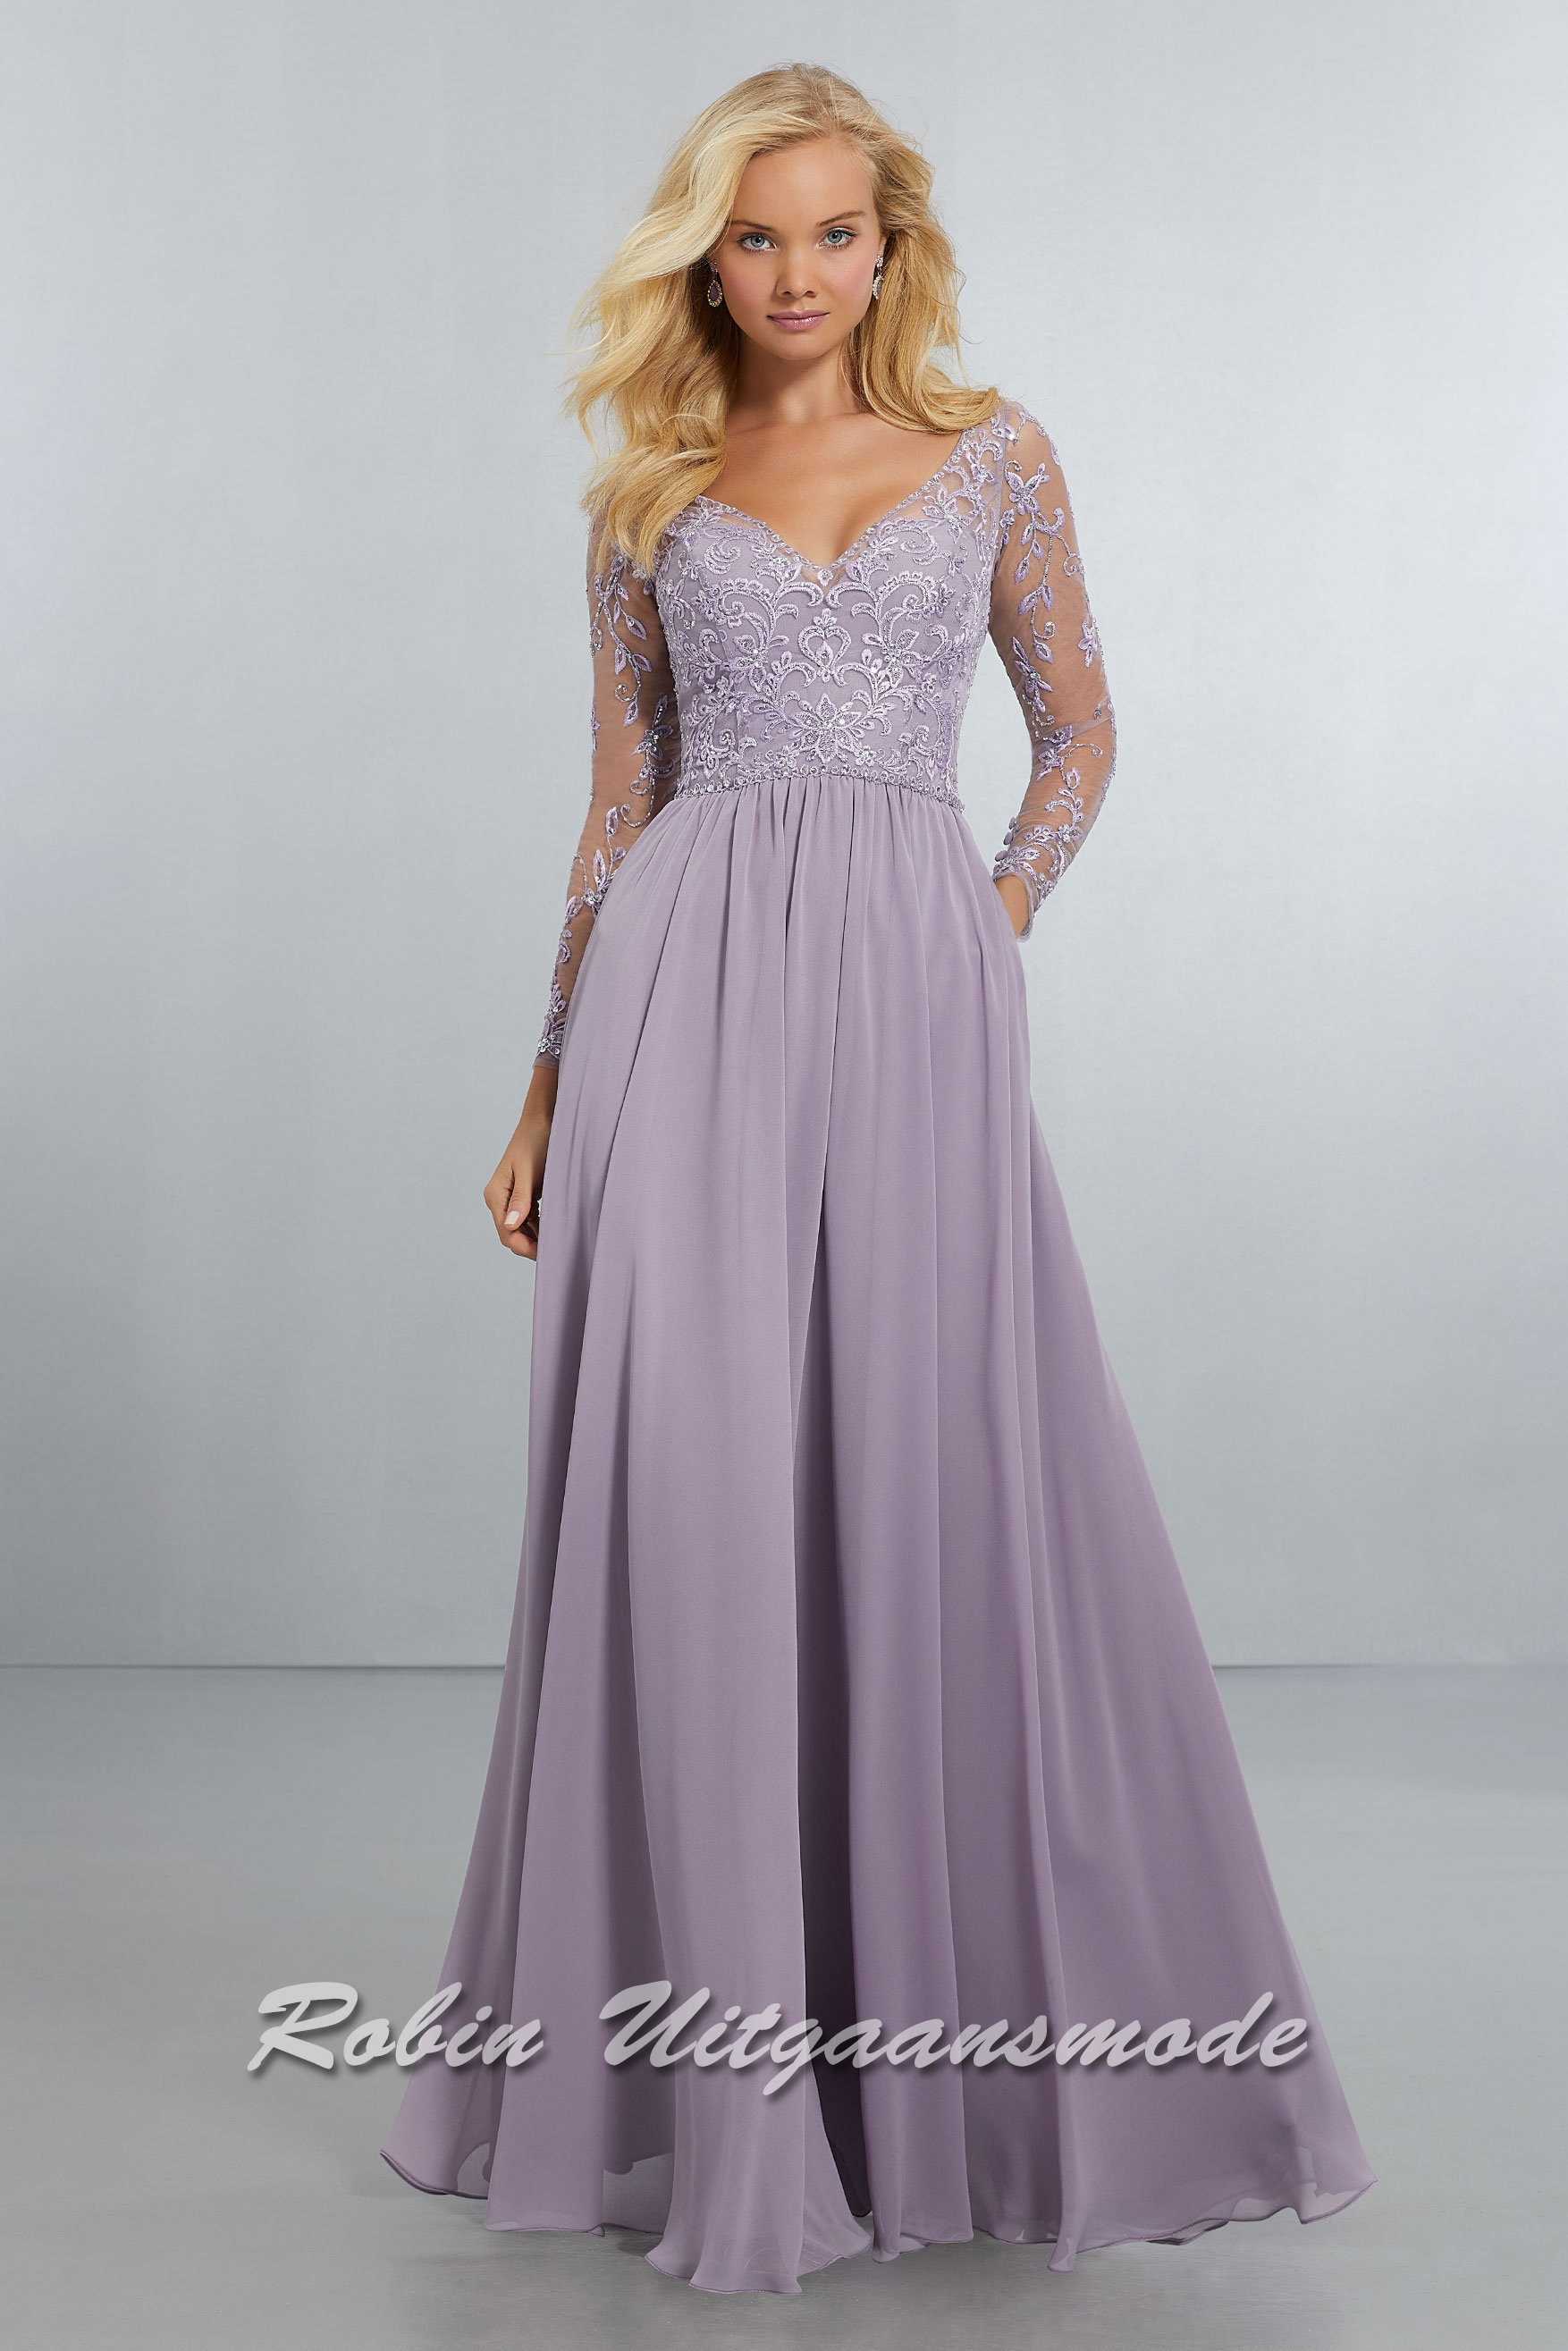 Evening Gowns With Sleeves Long Sleeve Prom Dresses Robin